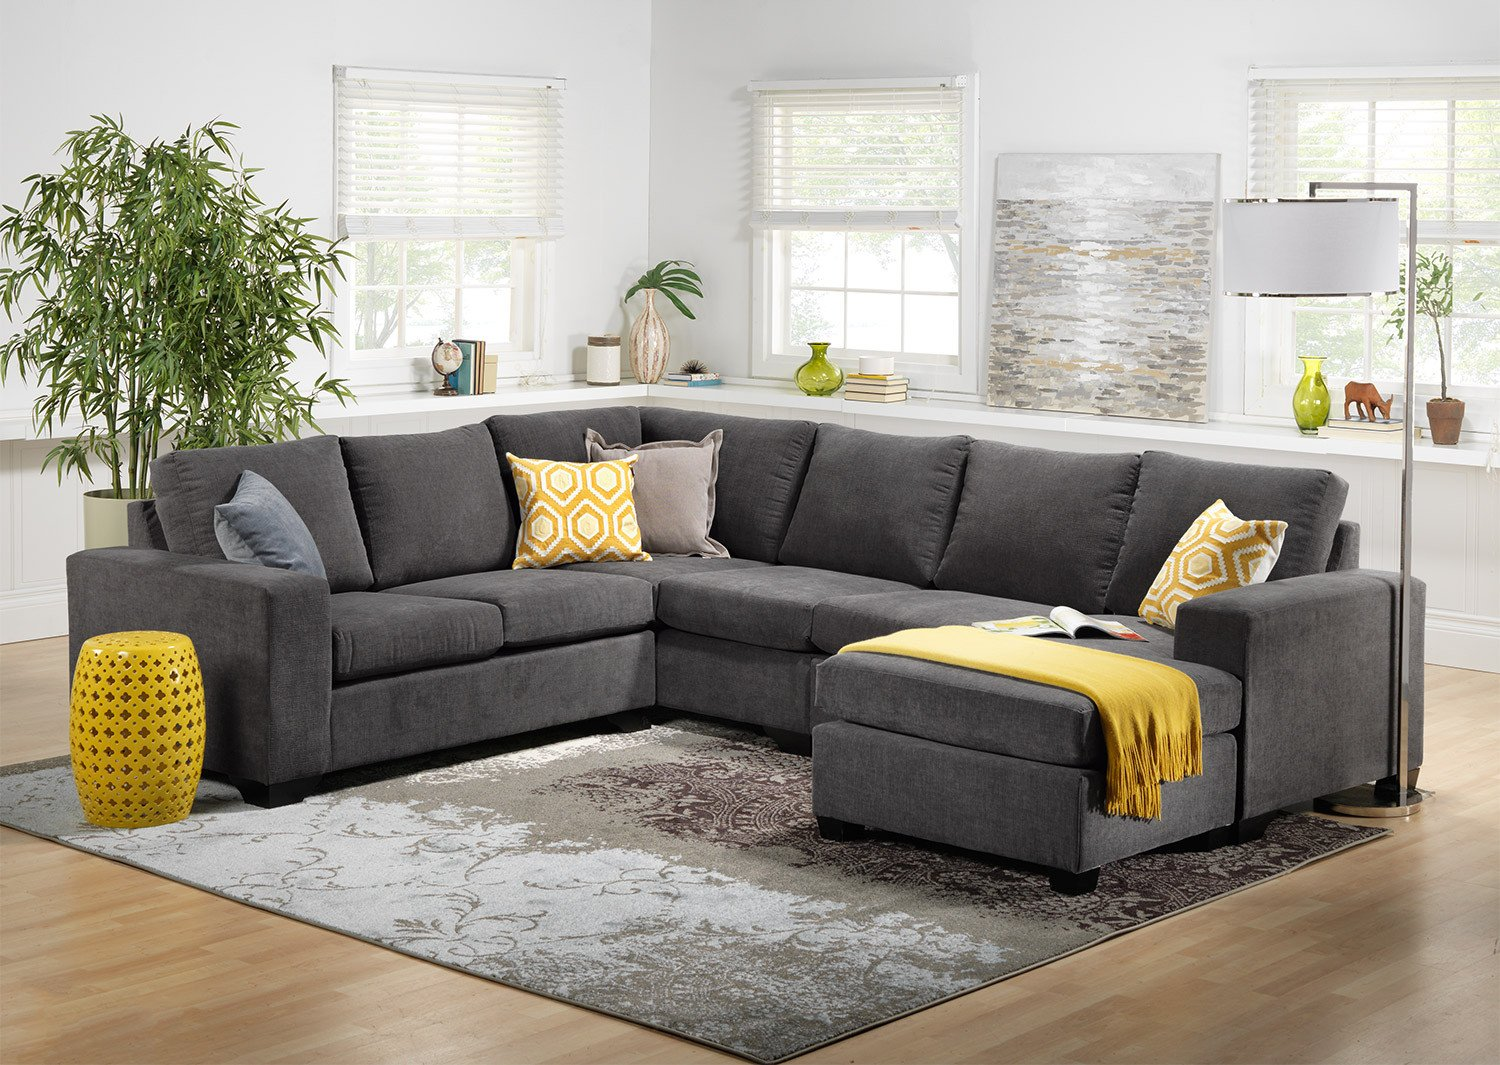 Comfortable Couches Living Room Unique Furniture fortable Sectionals sofa for Elegant Living Room Furniture Design